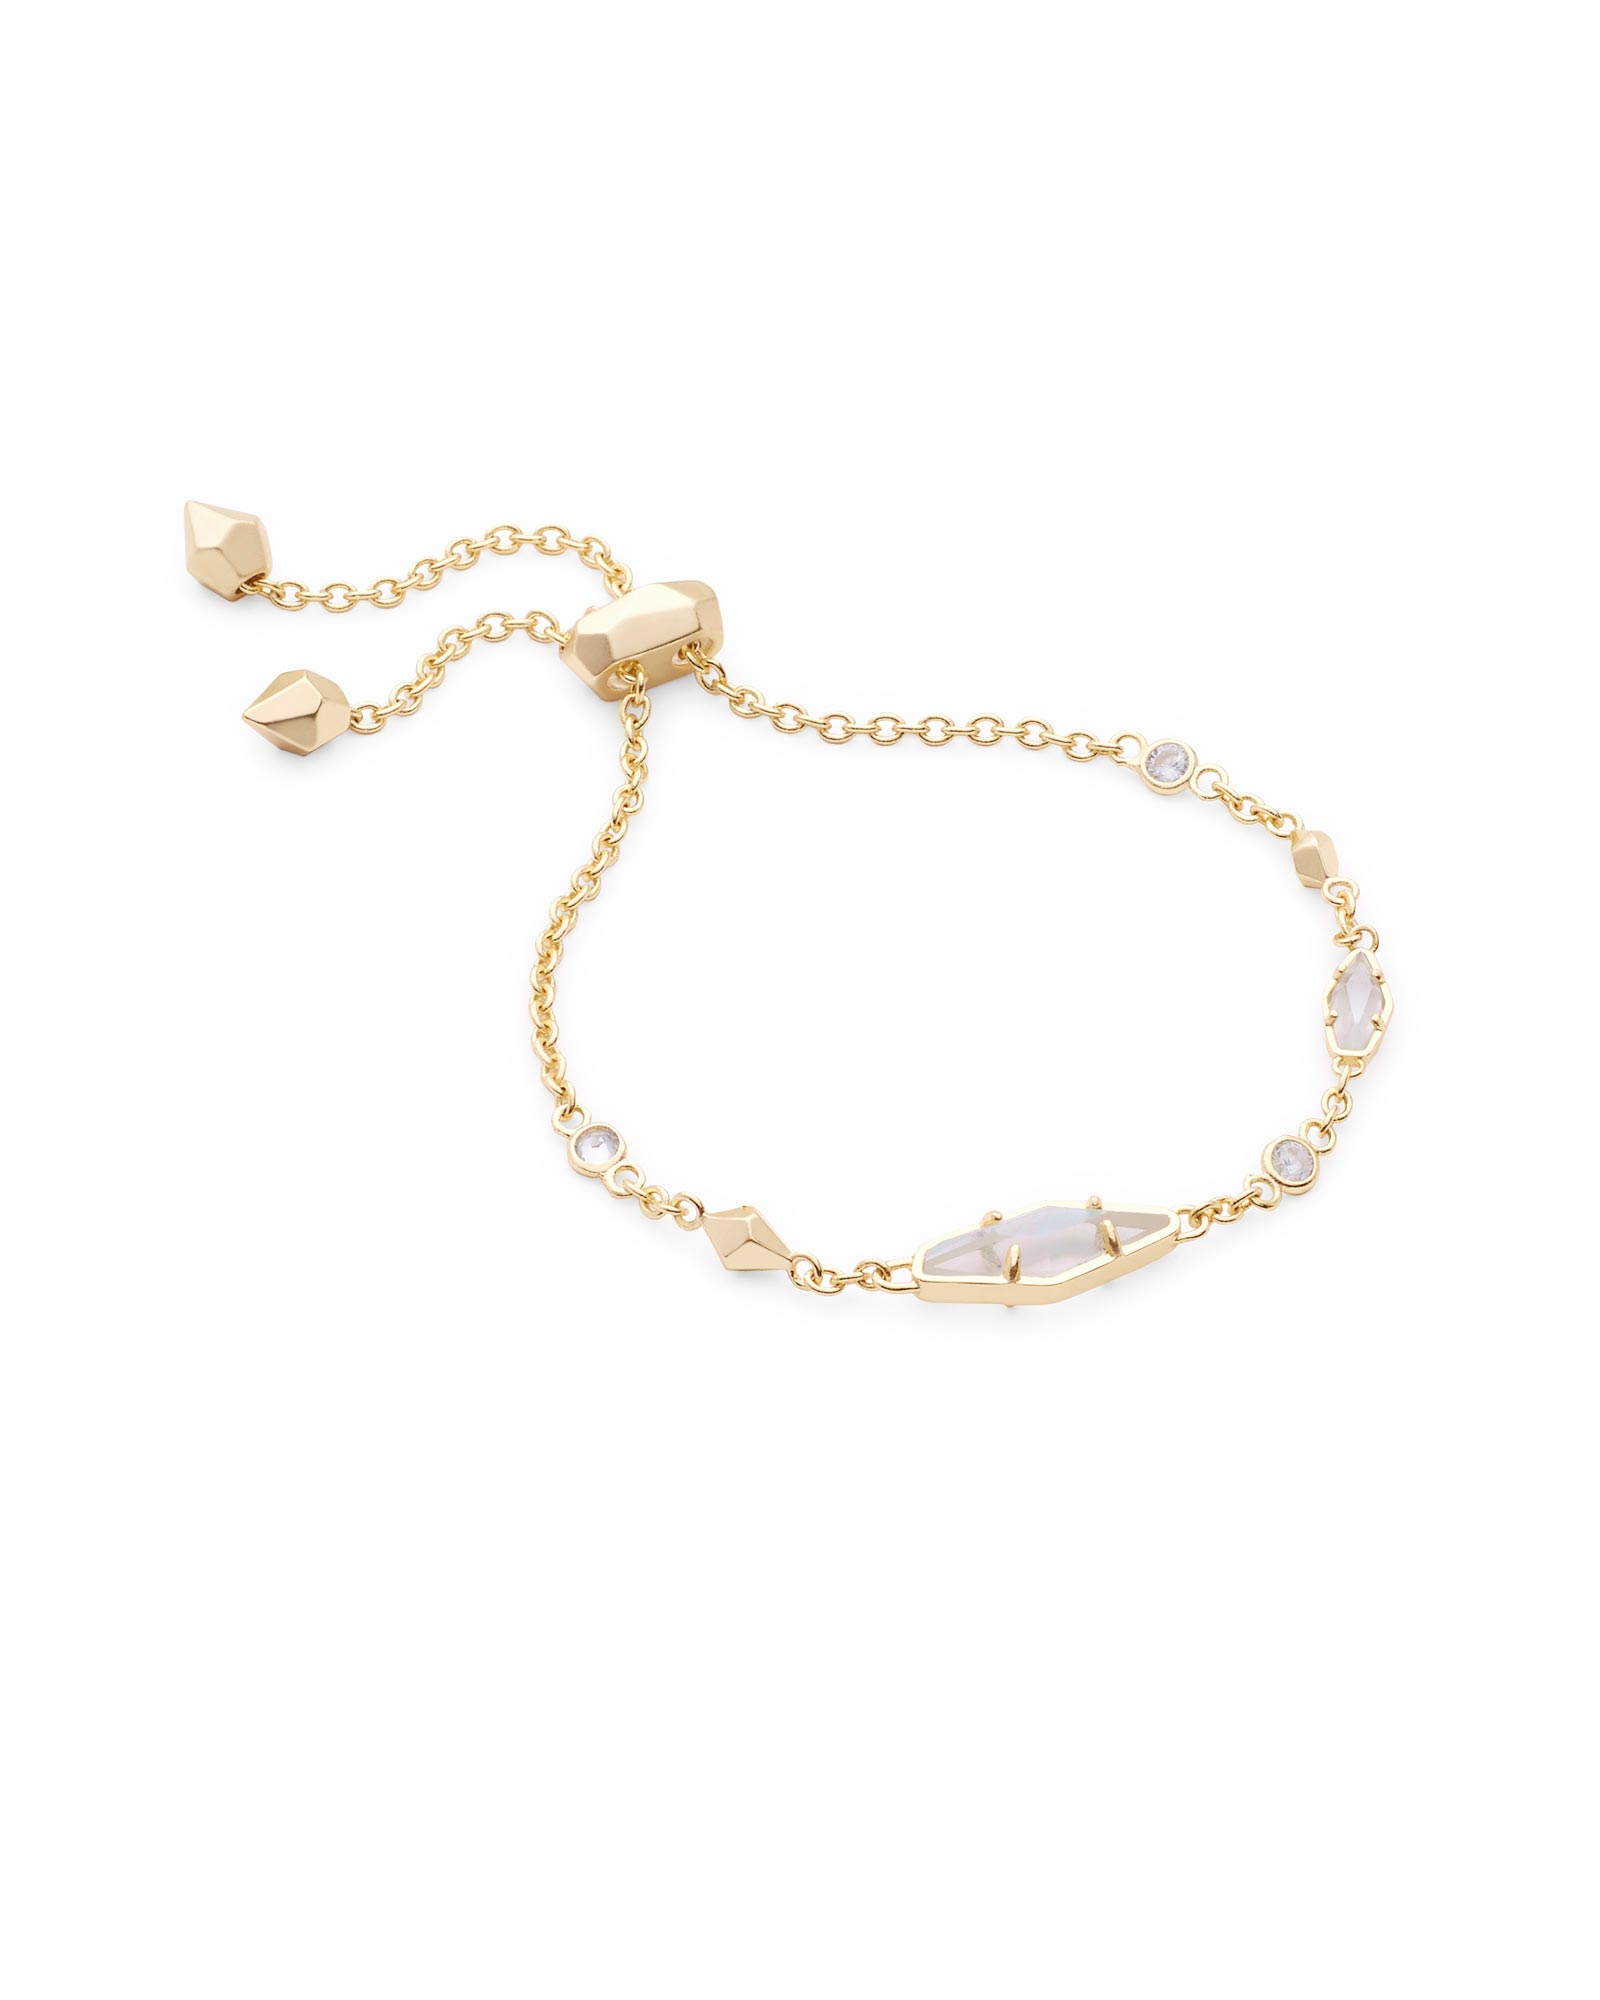 Deb Adjustable Chain Bracelet in Gold